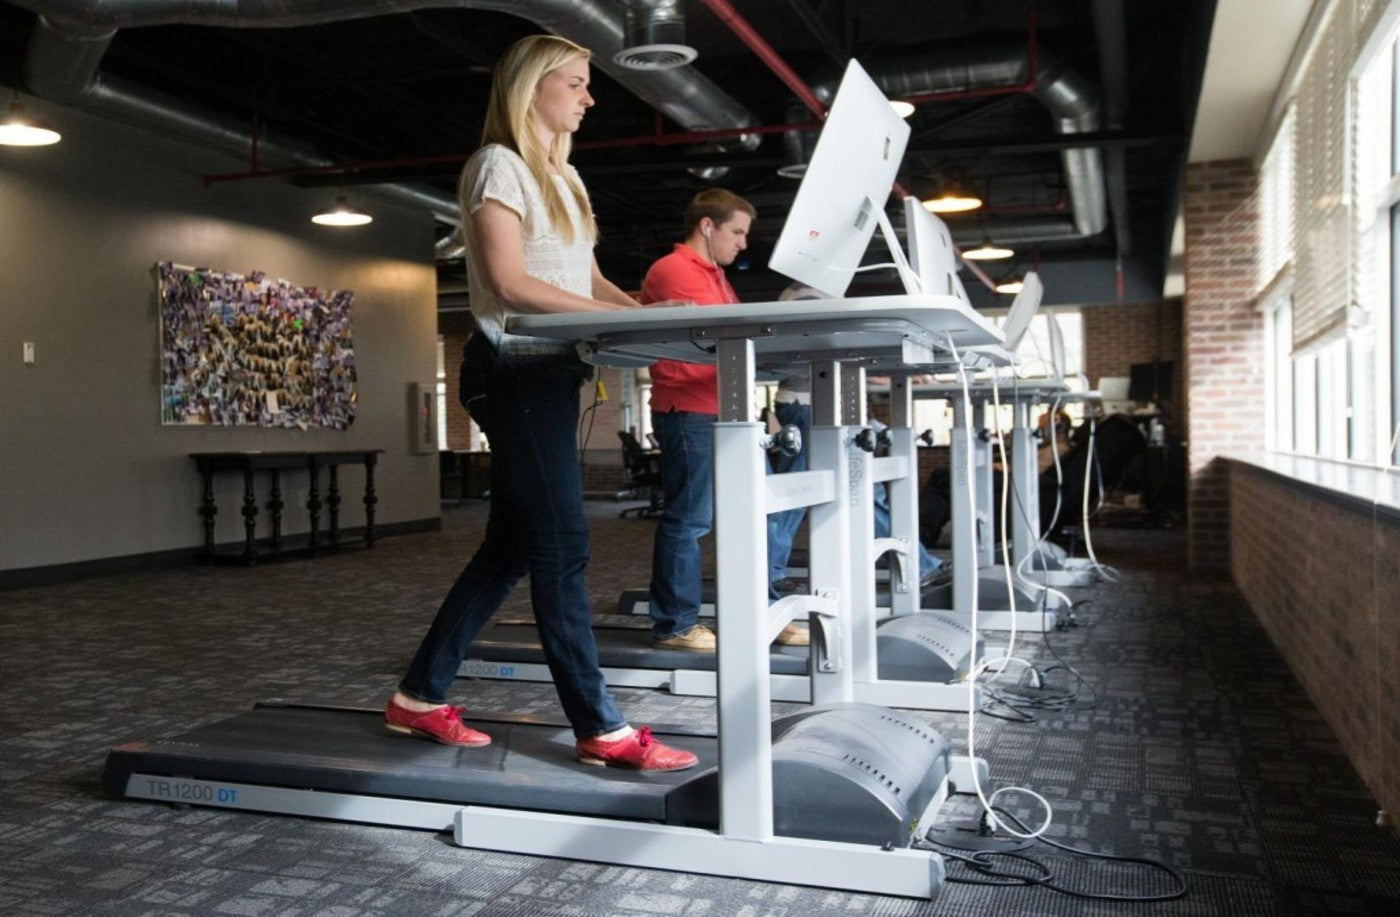 Treadmill Desks May Be Quirky, But People Love Them